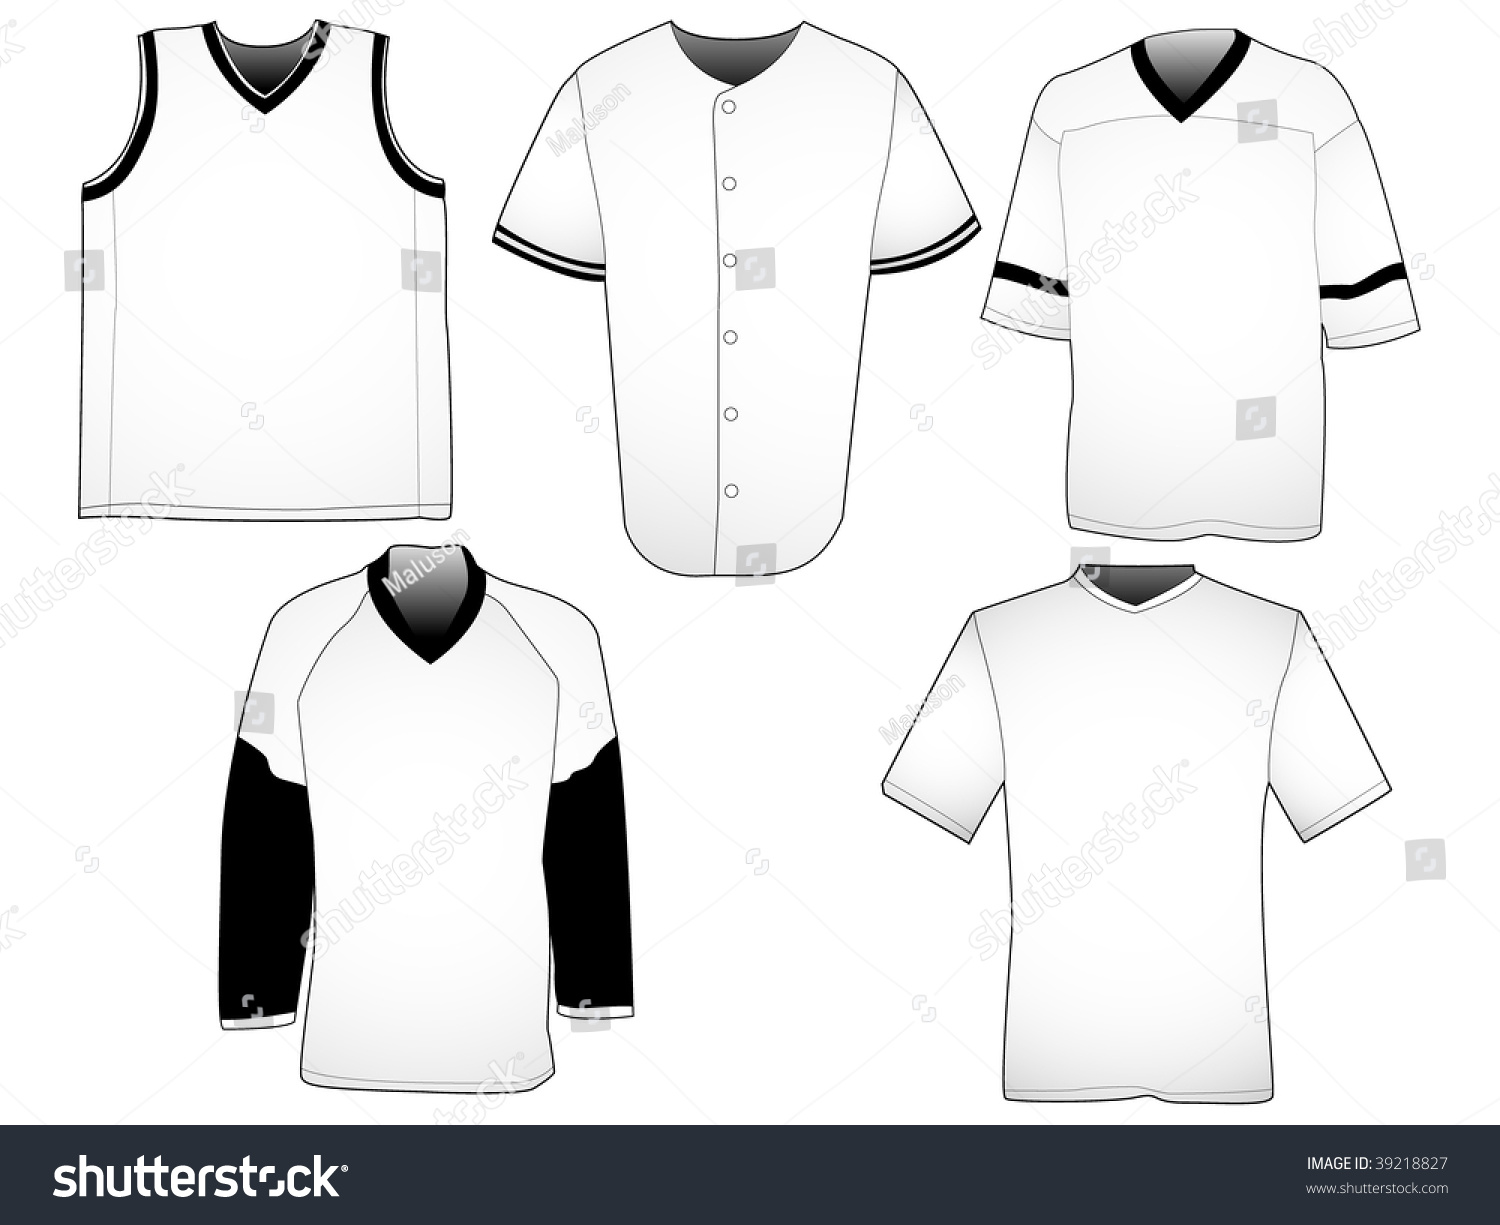 Design your own t-shirt and save it - Save To A Lightbox